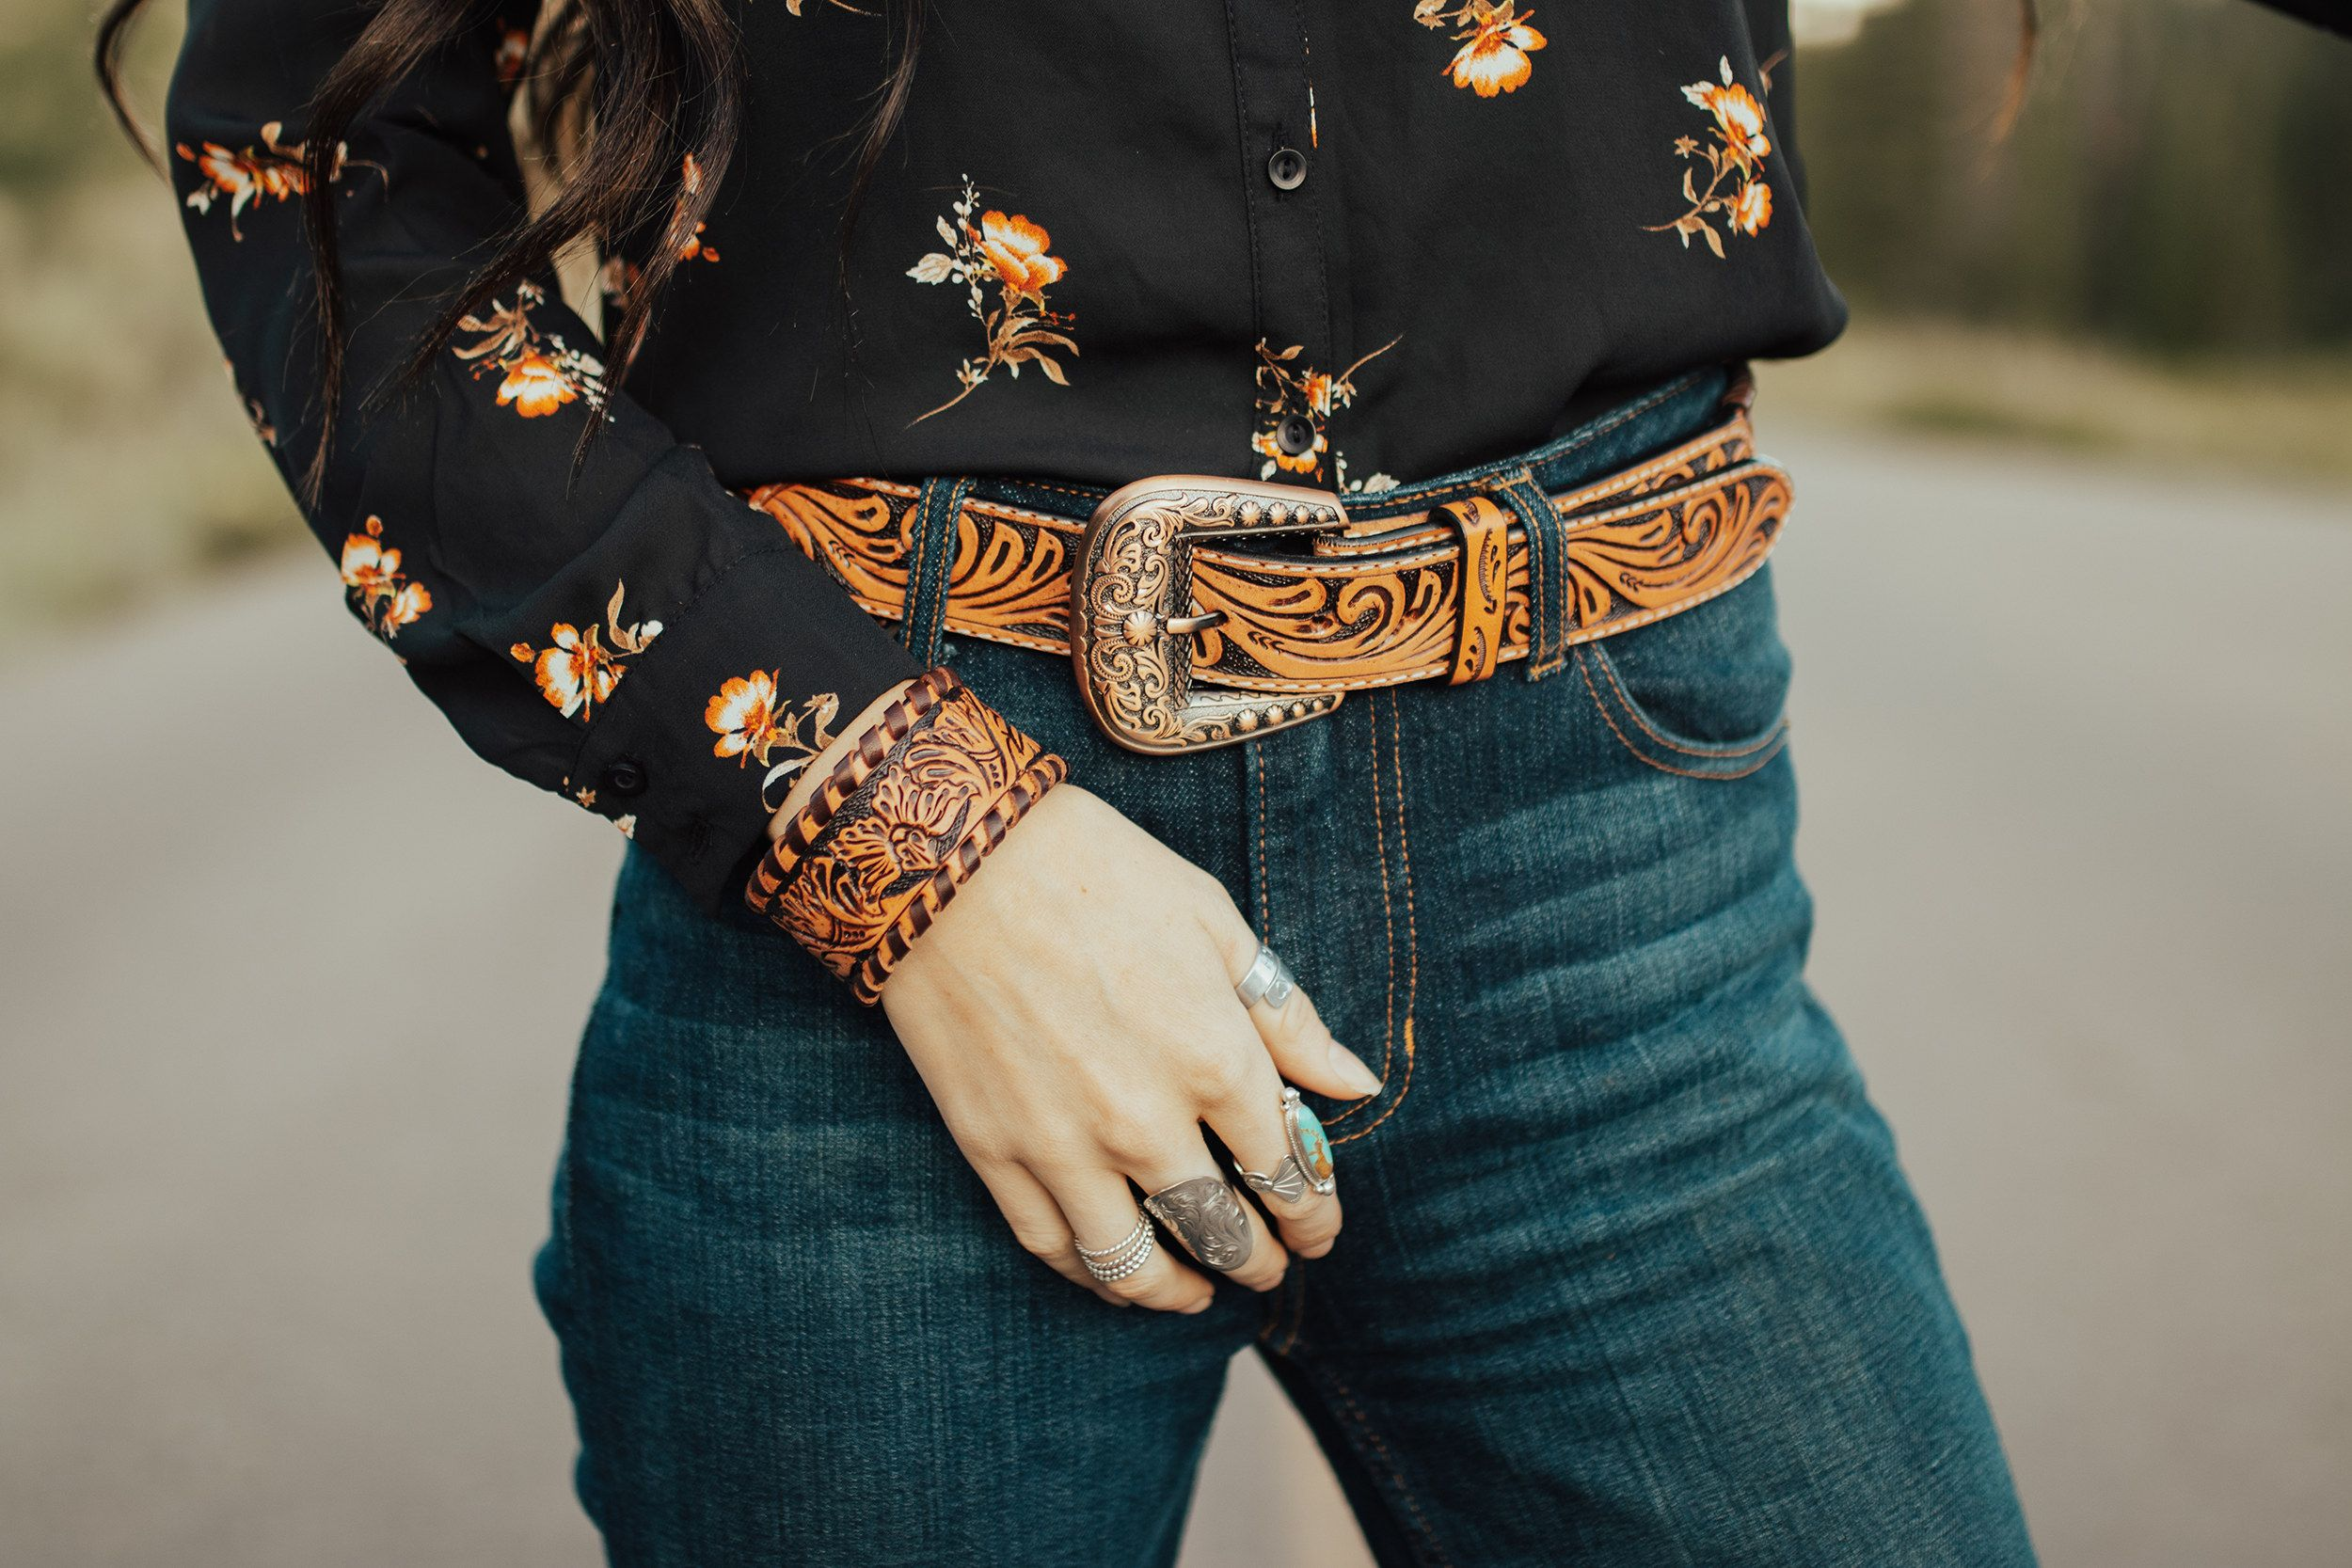 The perfect match - leather tooled belt and cuff